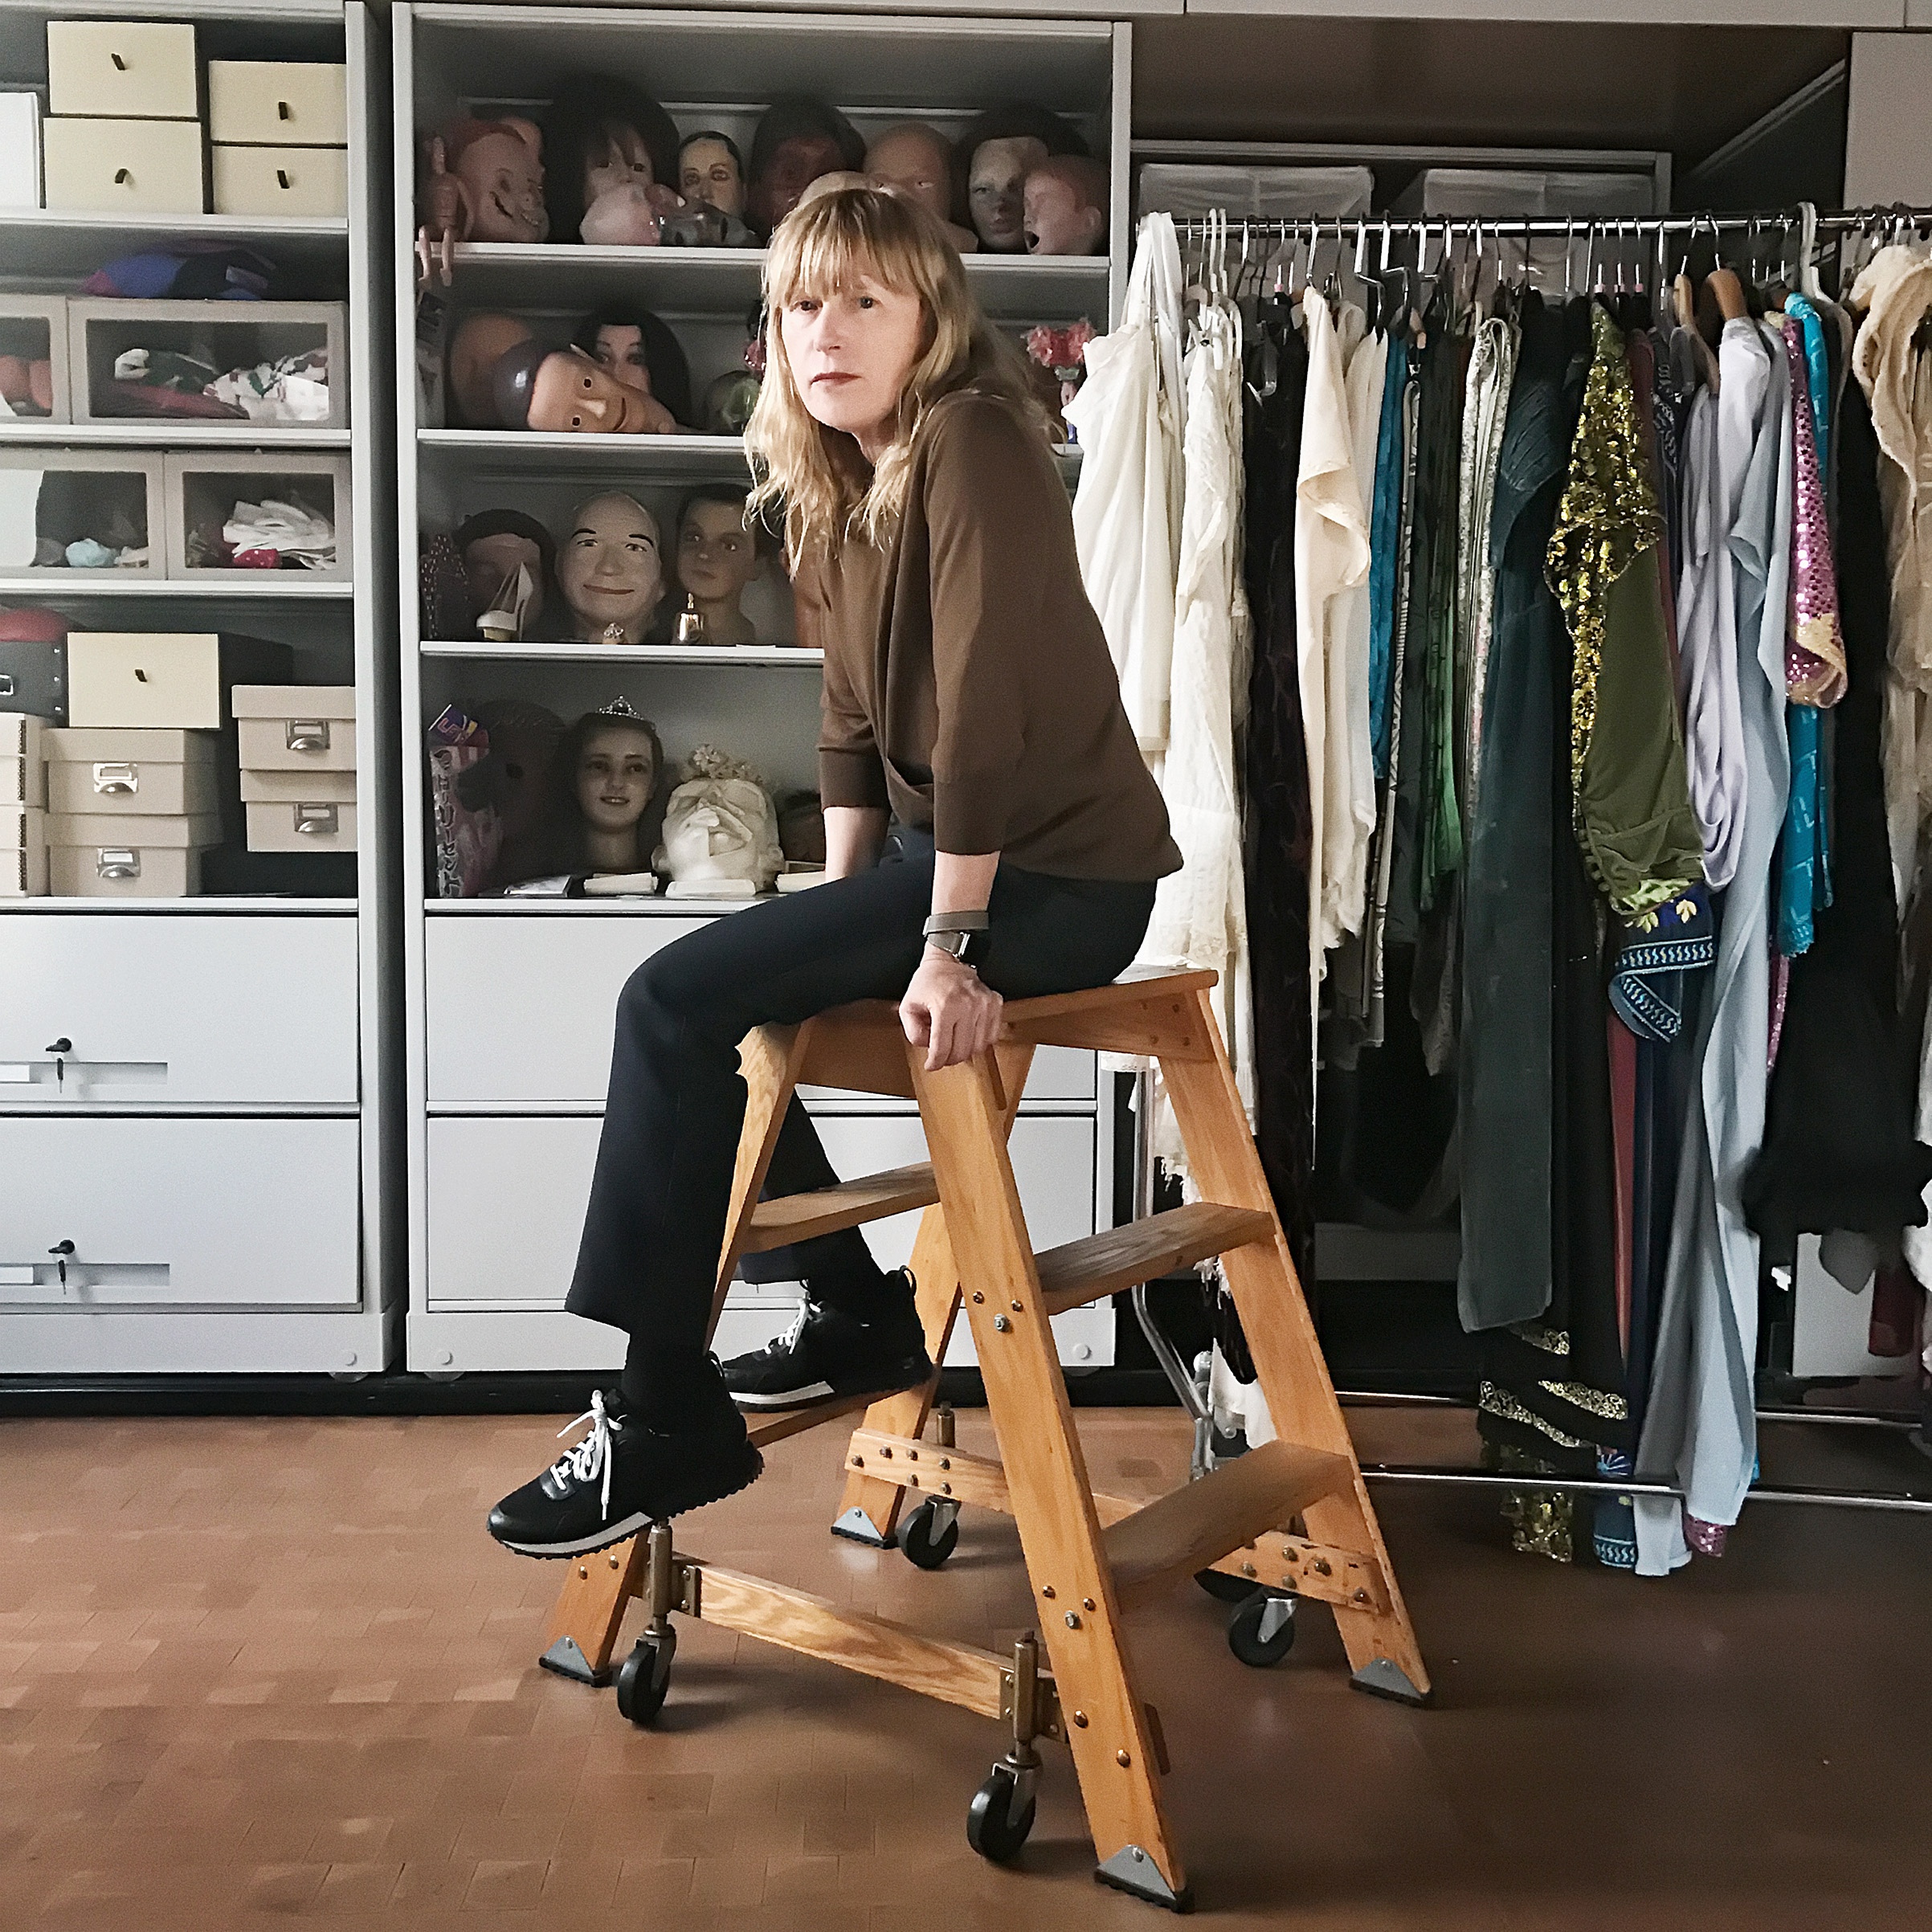 Portrait of Cindy Sherman, photographed in her studio loft in the Greenwich Village, NYC, on February 15, 2017.